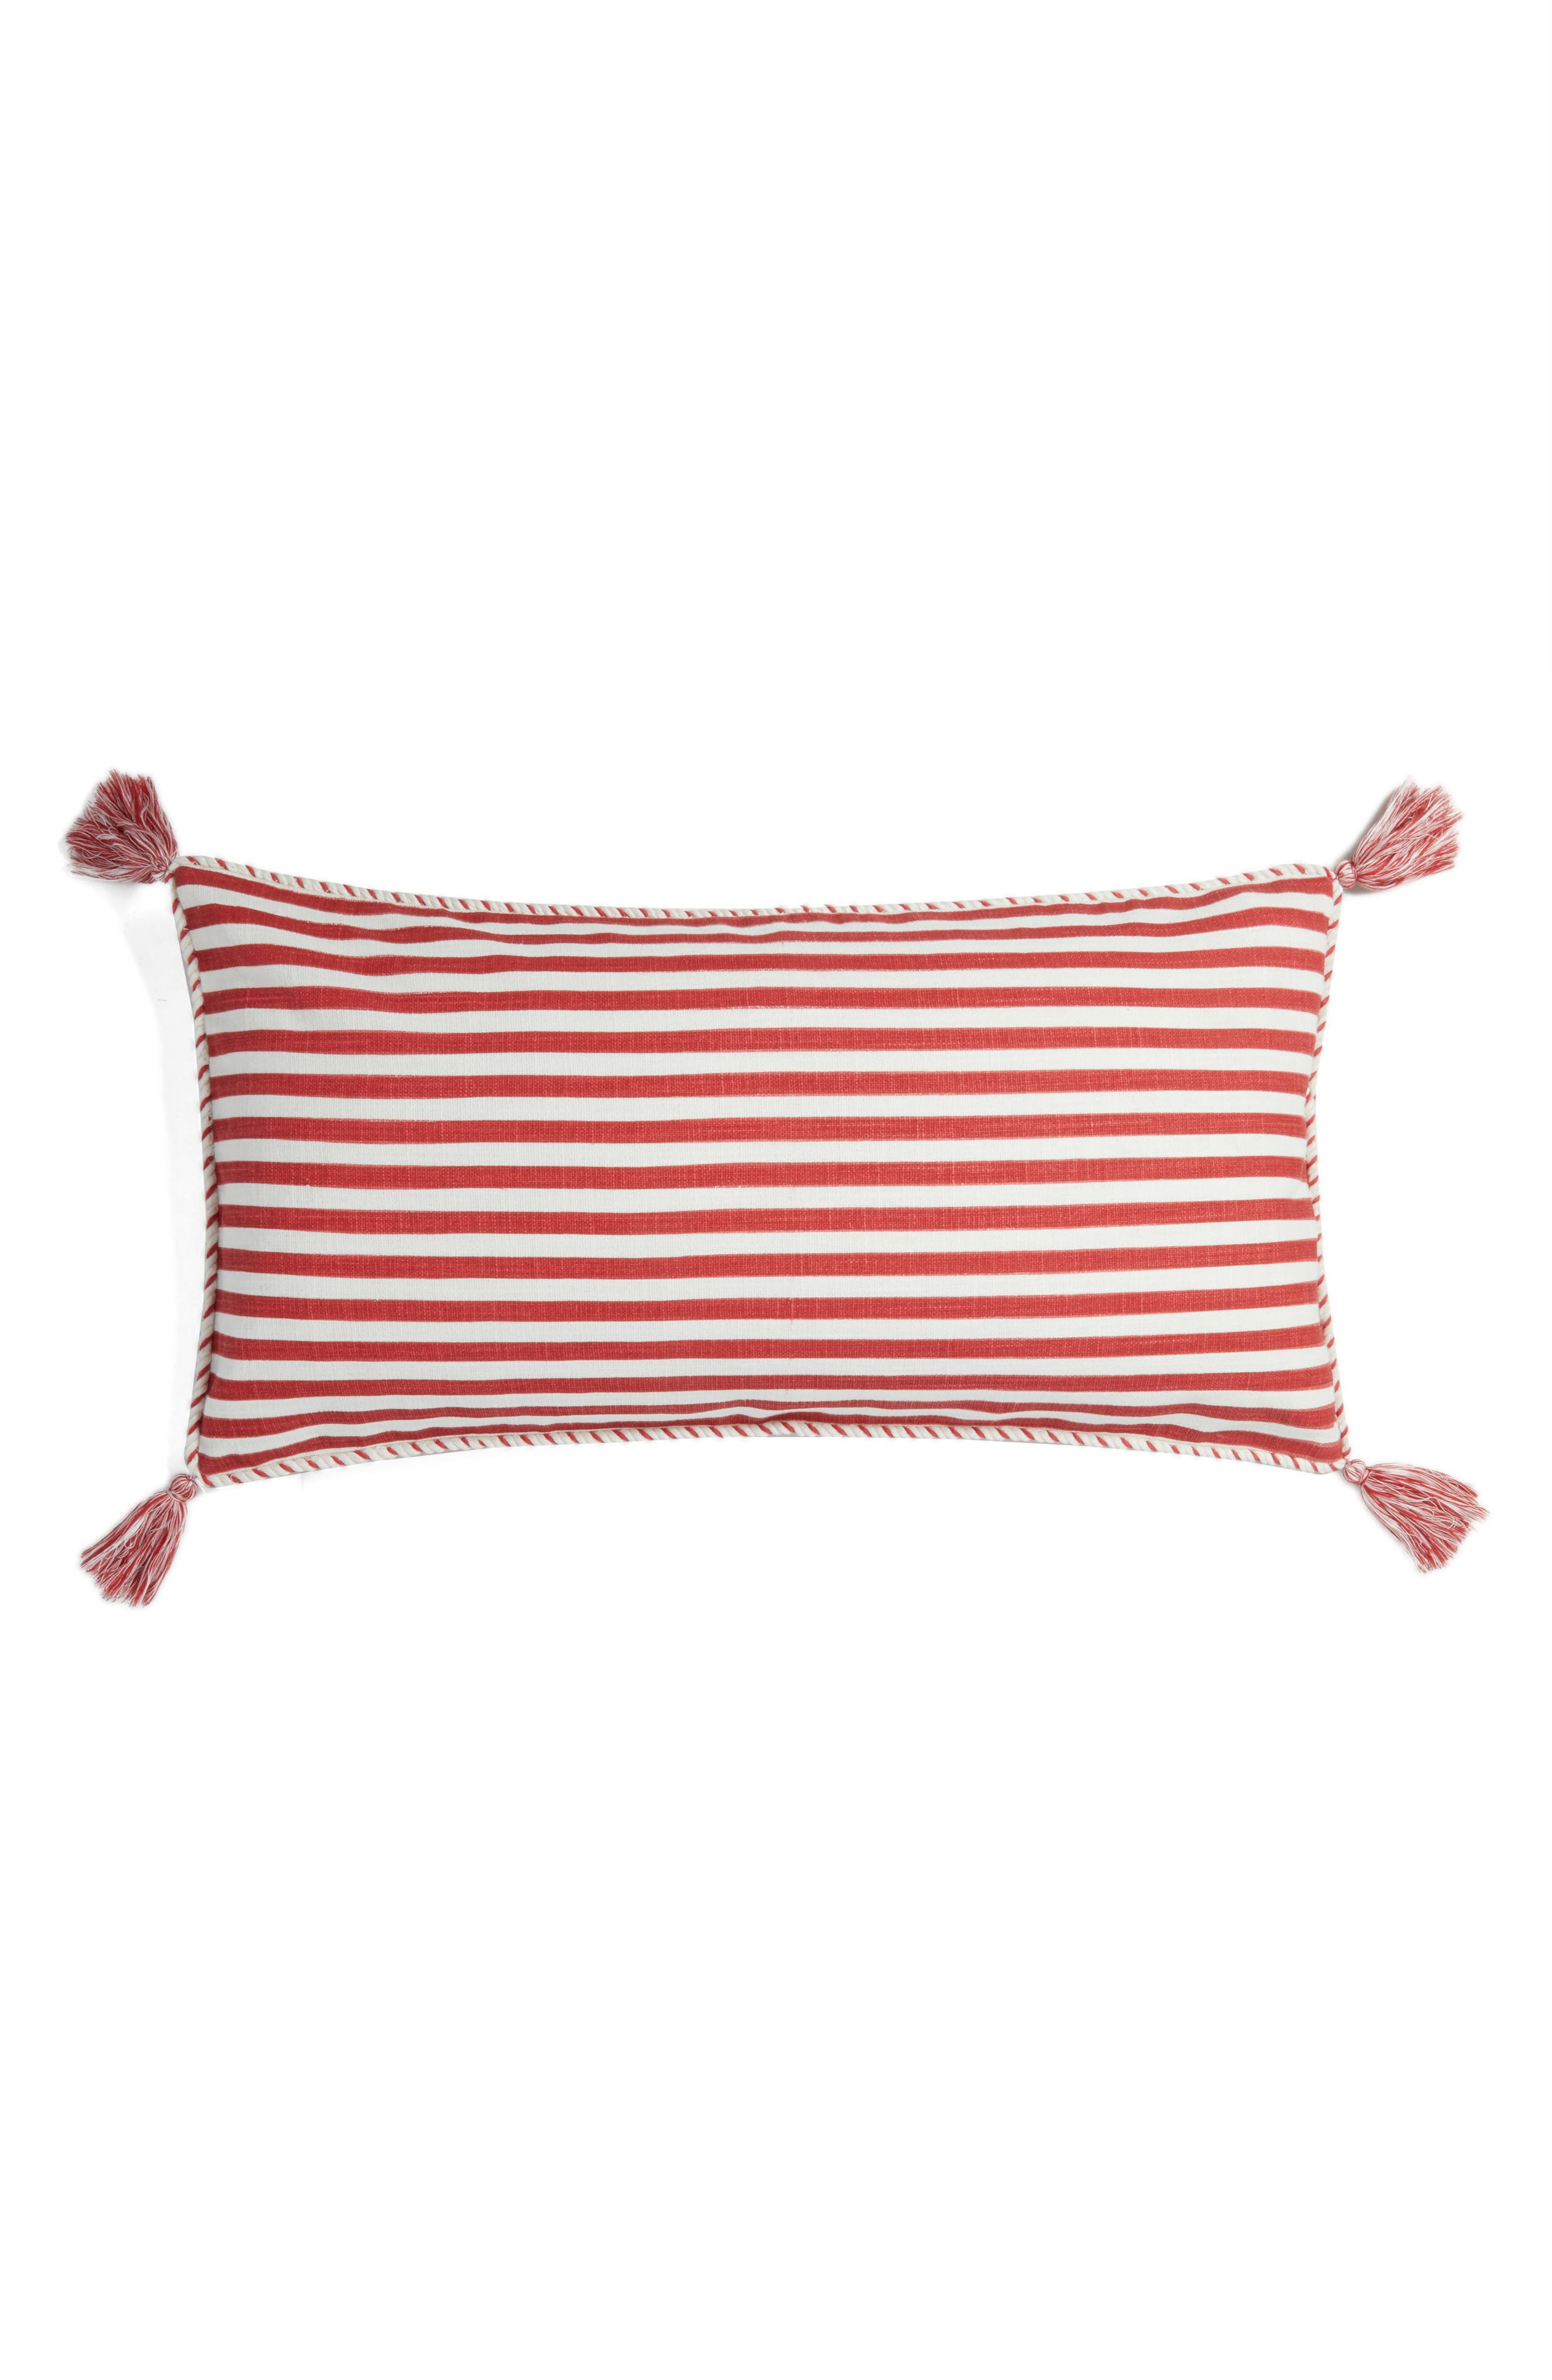 Stripe Tassel Accent Pillow,                         Main,                         color, Red Cardinal